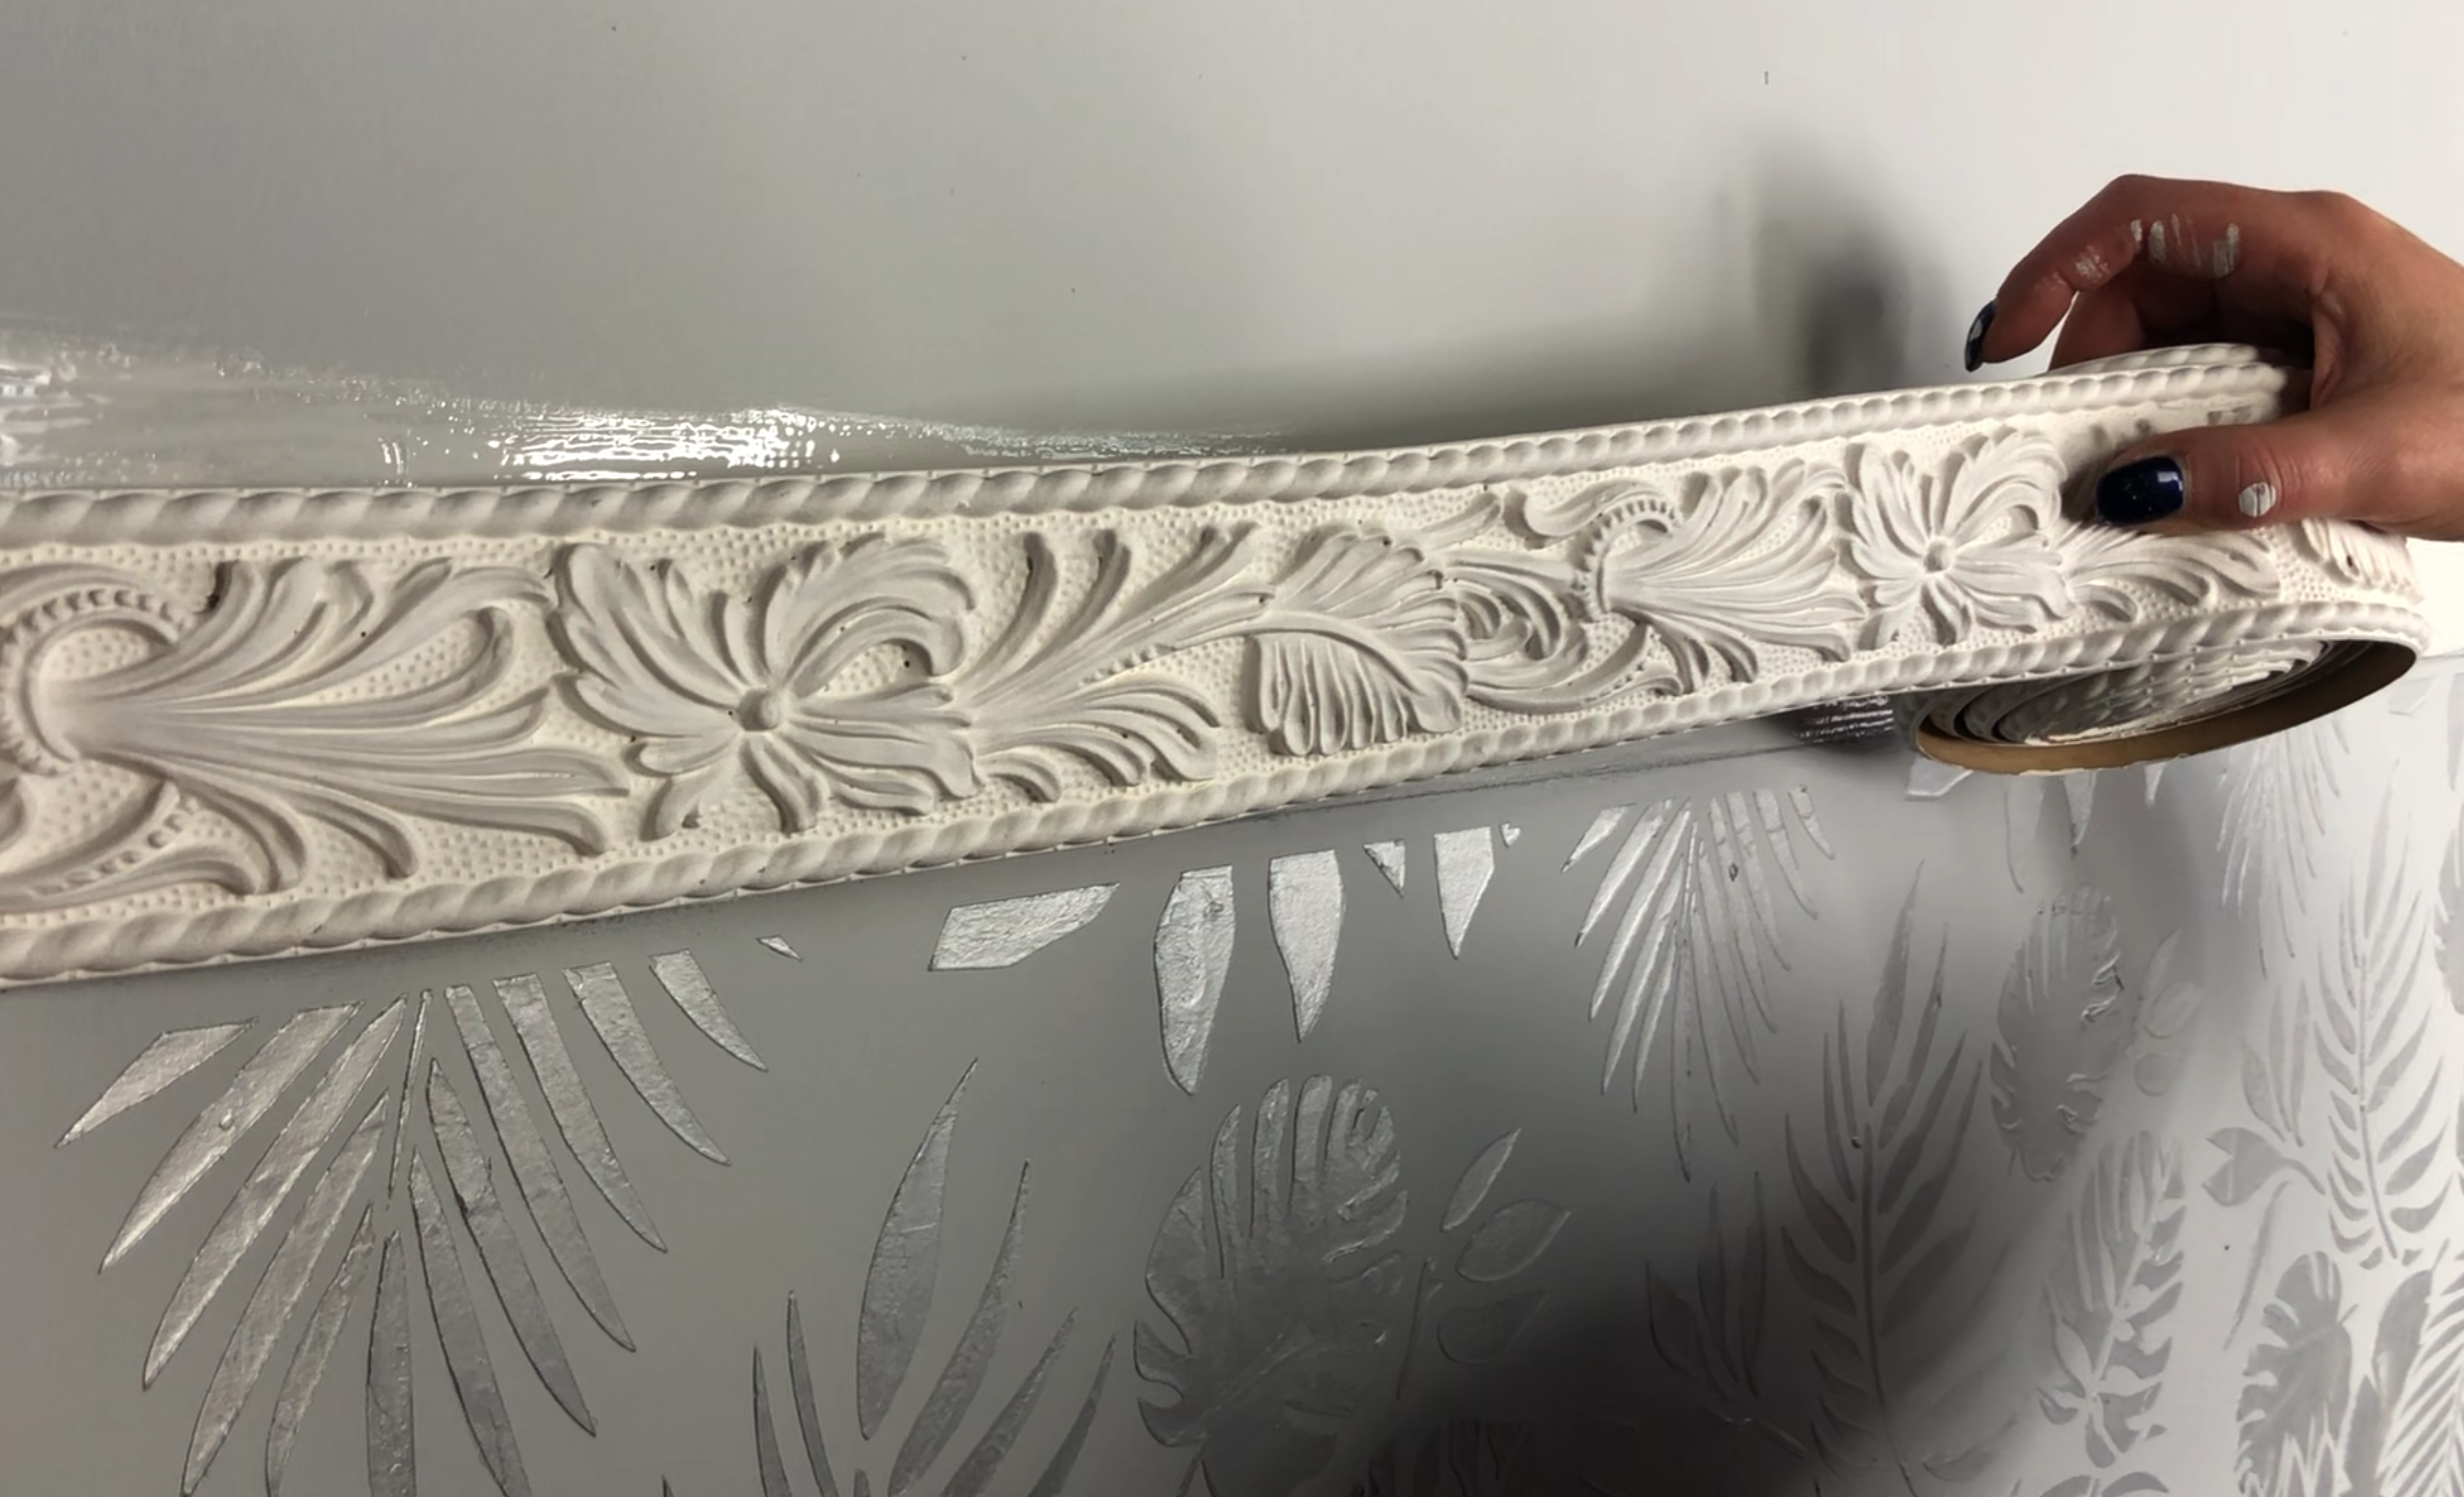 Pre-painted woodubend trim being adhered to a wall. It is painted white and the raised stencilling of the interior design project is visible at the bottom